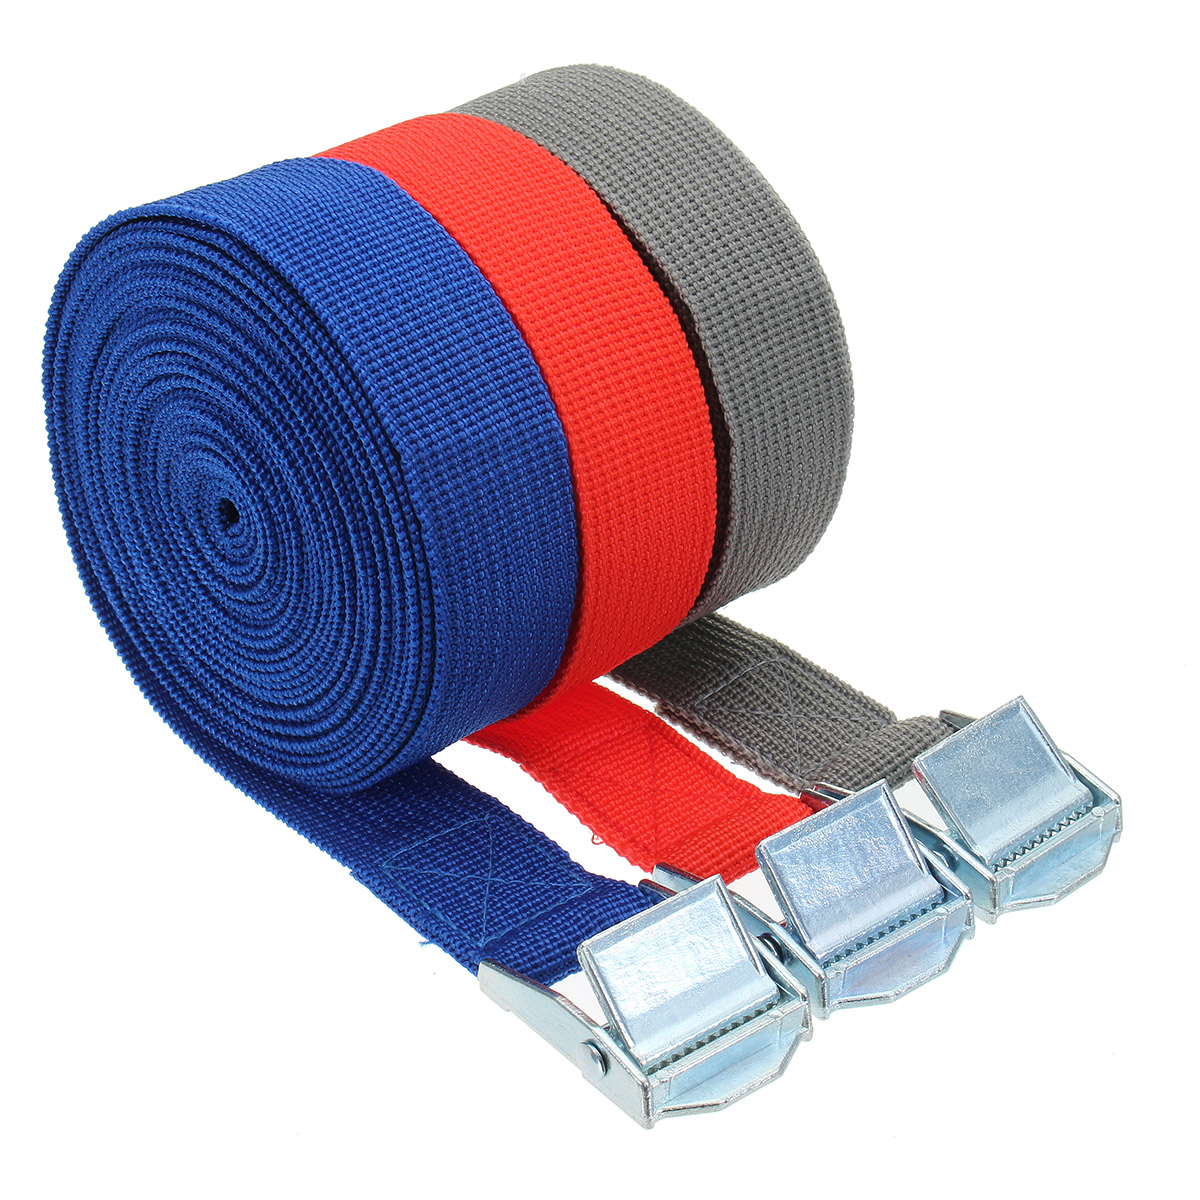 Car Tension Rope Ratchet Tie Luggage Strap Tied Auto Car Boat Fixed Strap Luggage Belt With Alloy Buckle 5m